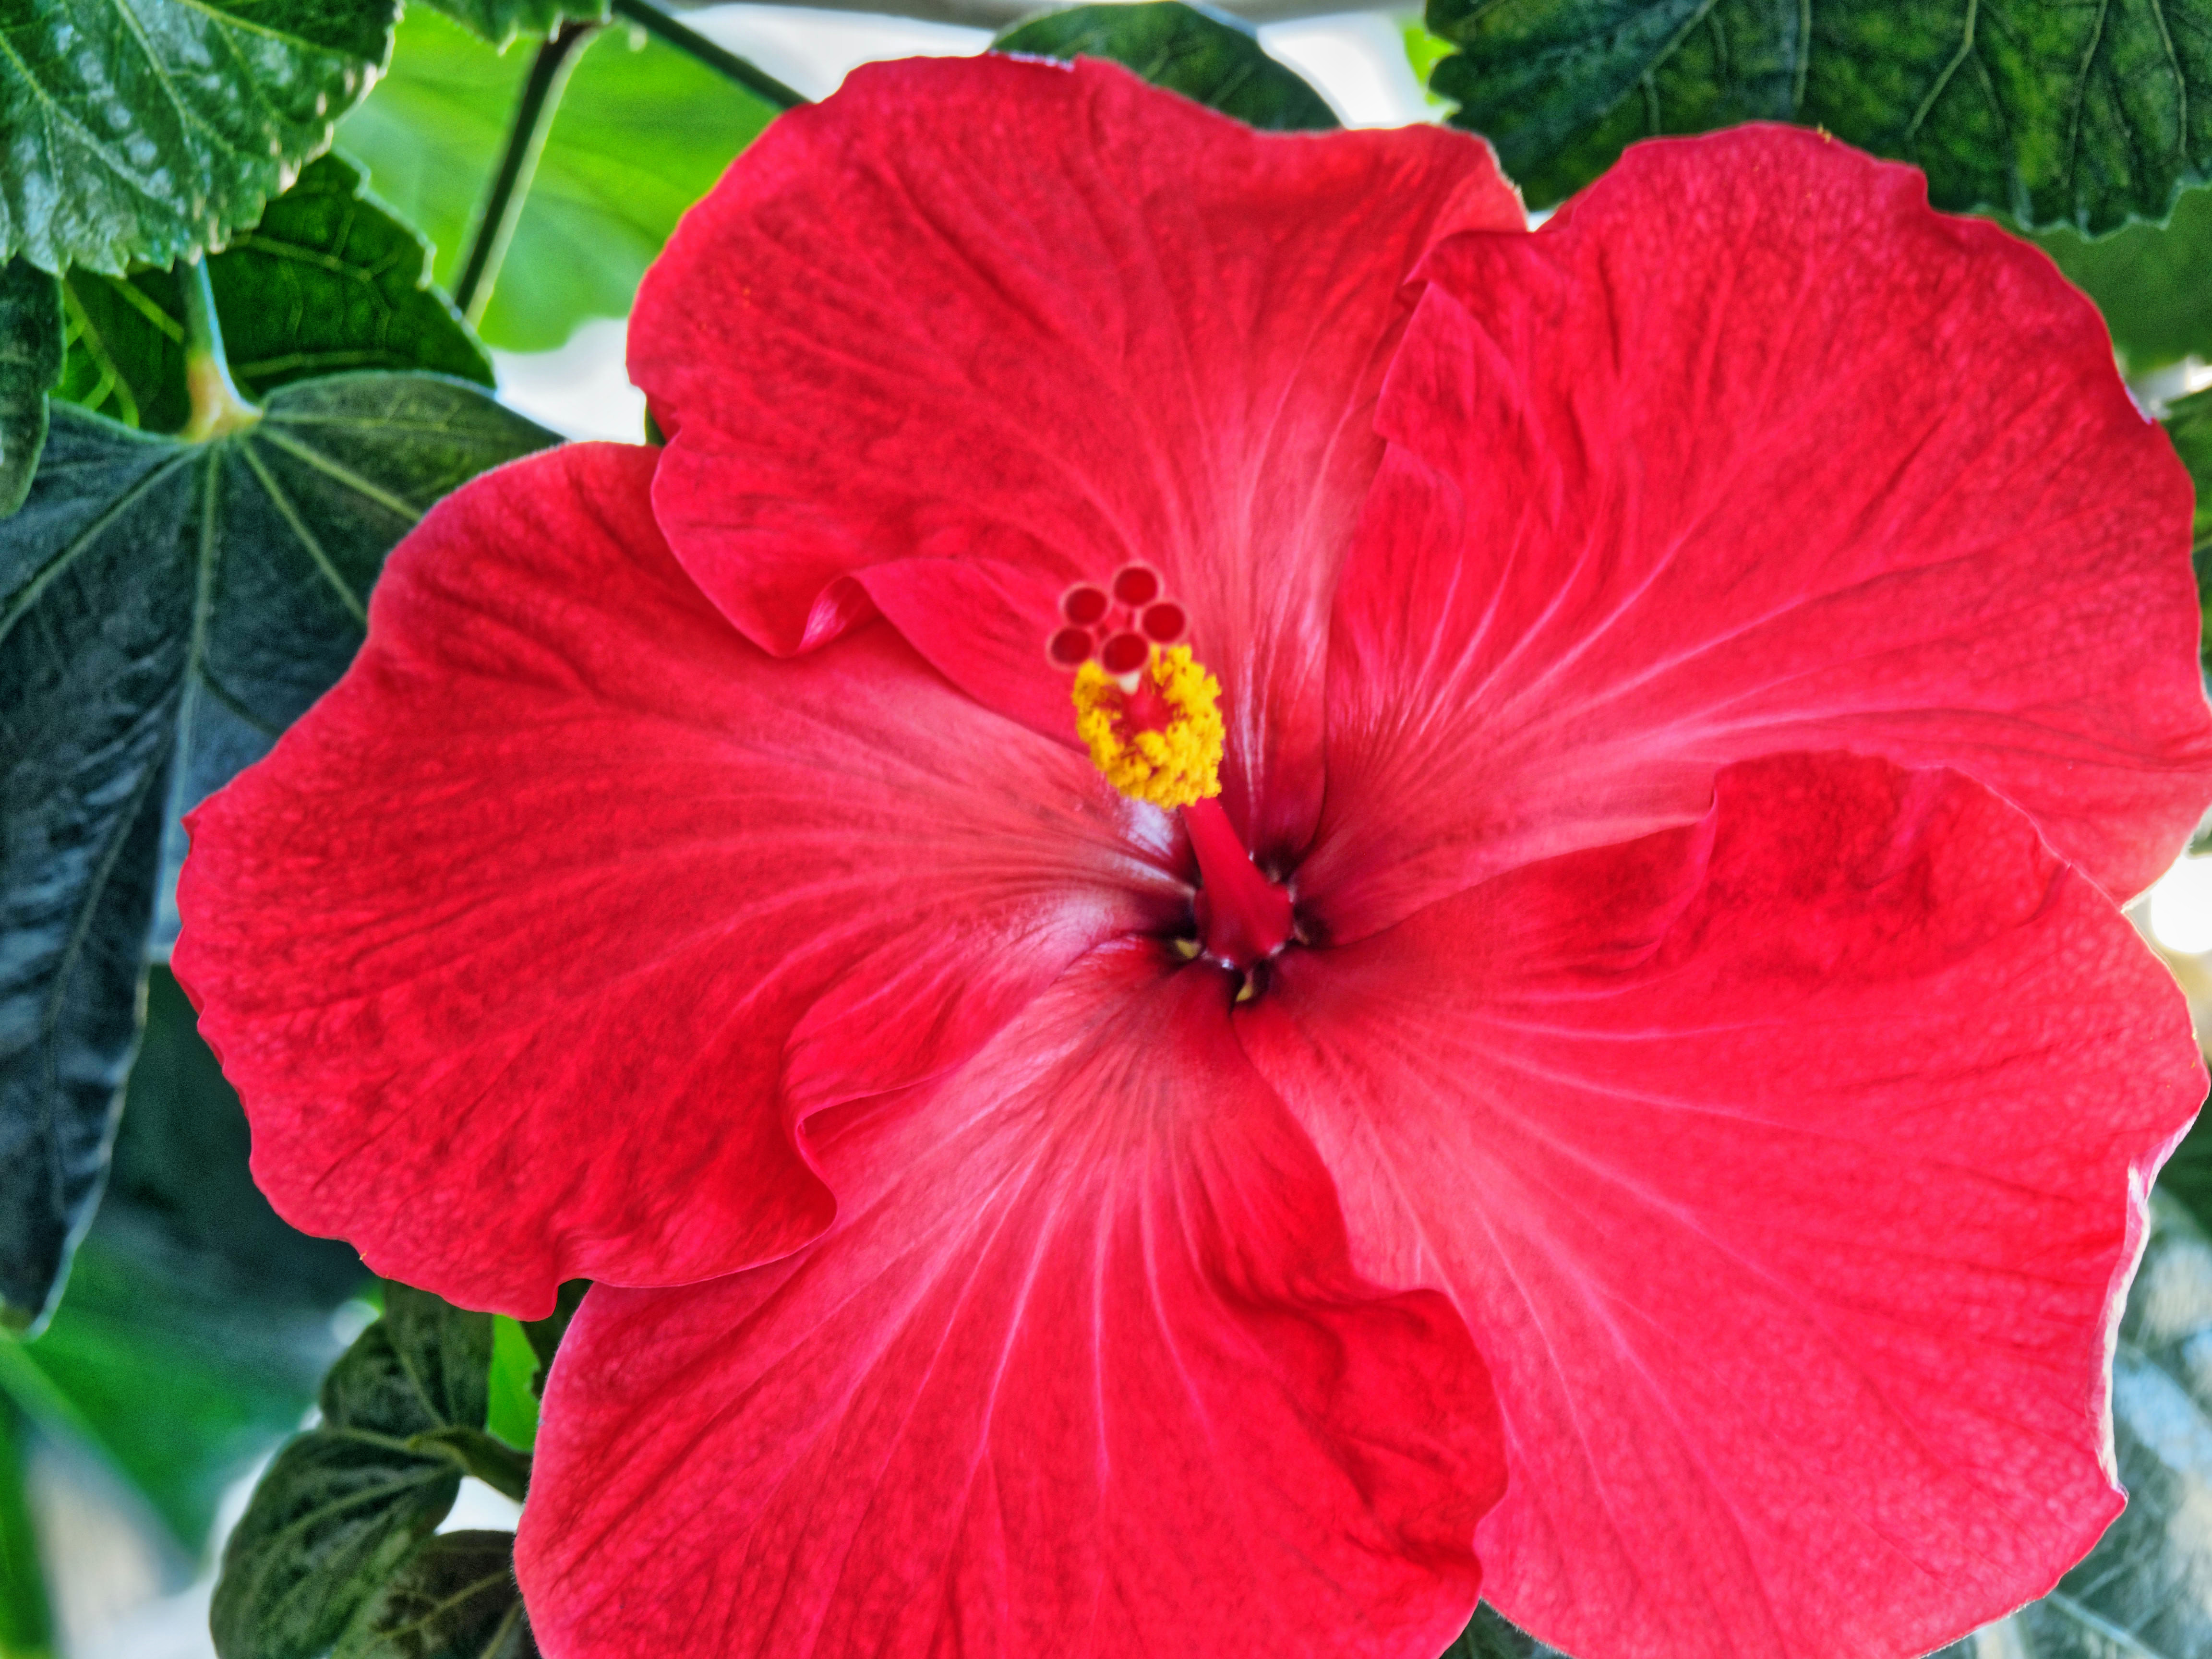 This should be Hibiscus-29.jpeg.  Is it missing?